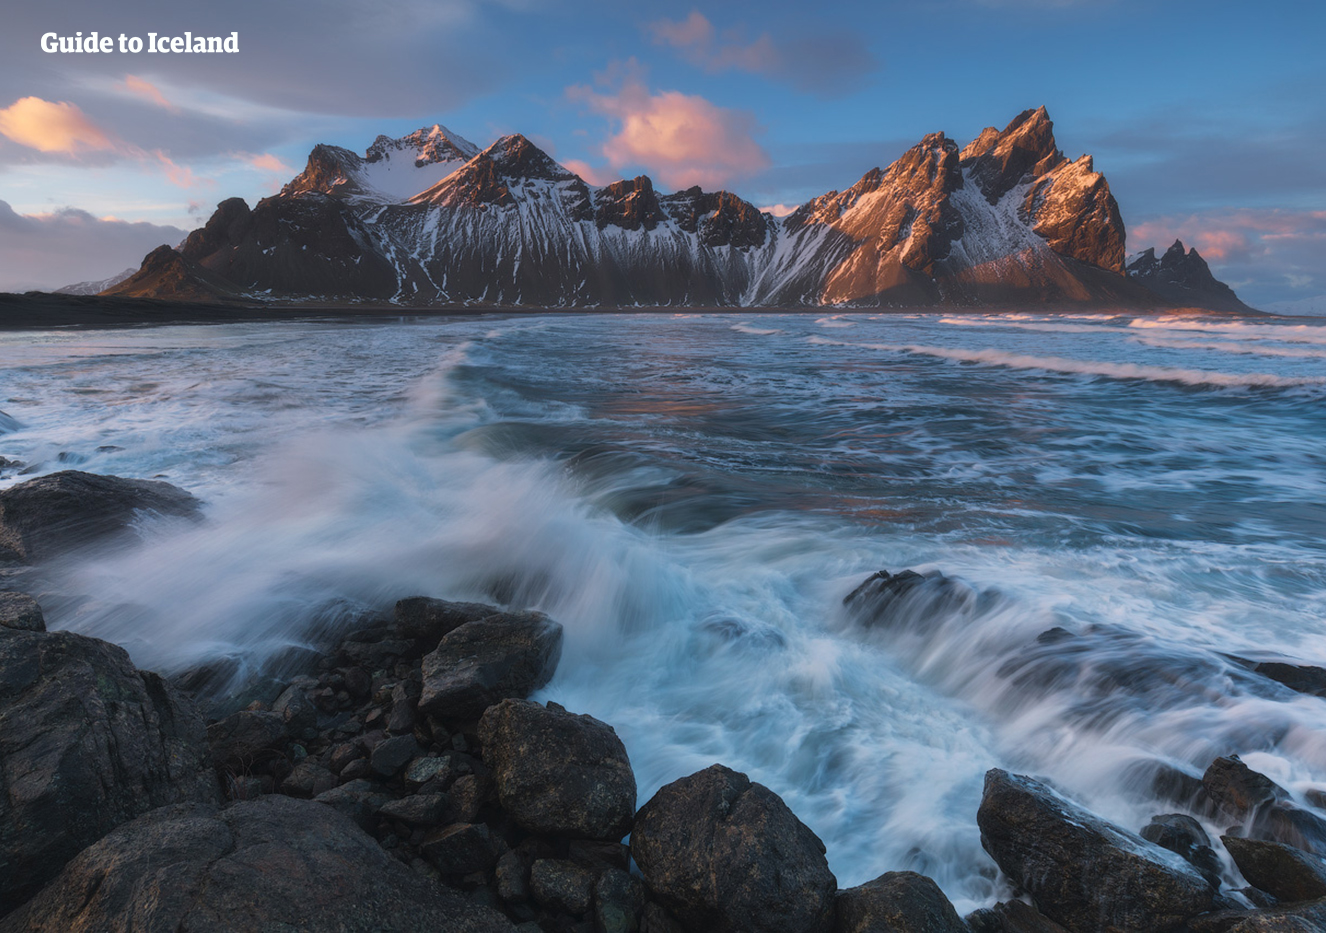 See jagged mountains and dramatic coastal views on your visit to East Iceland.